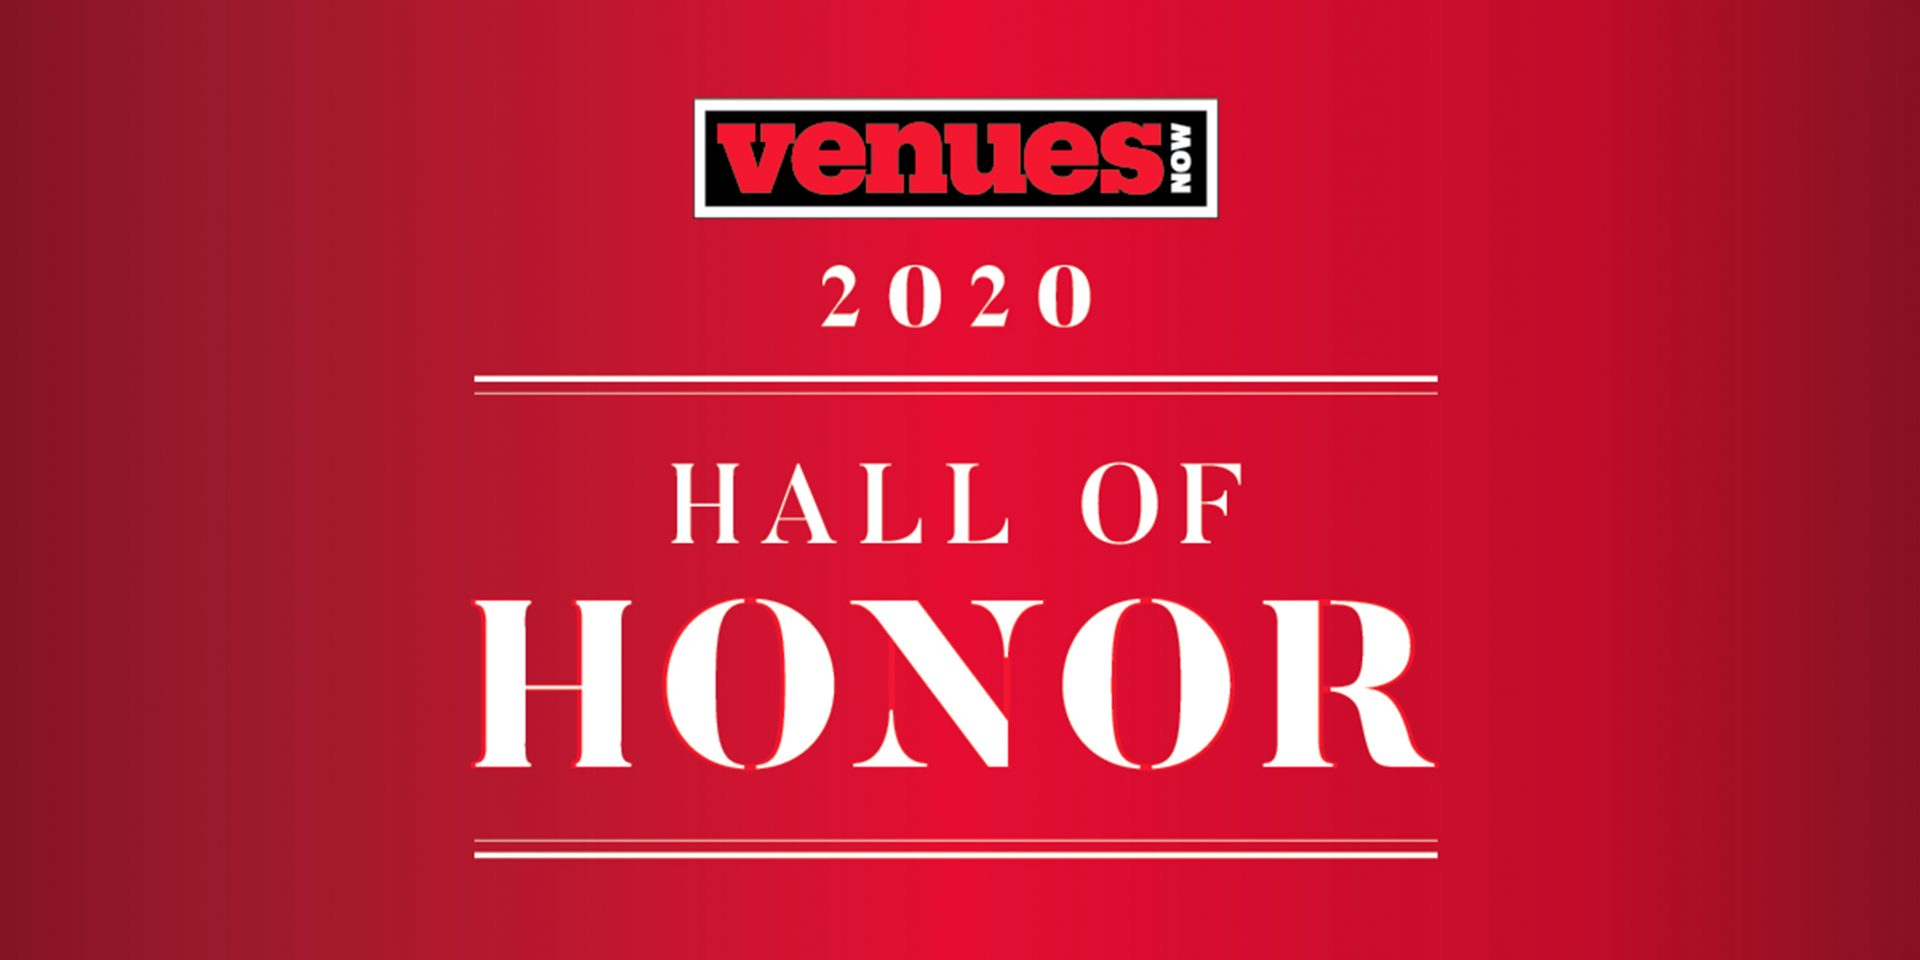 VenuesNow Hall of Honor 2020